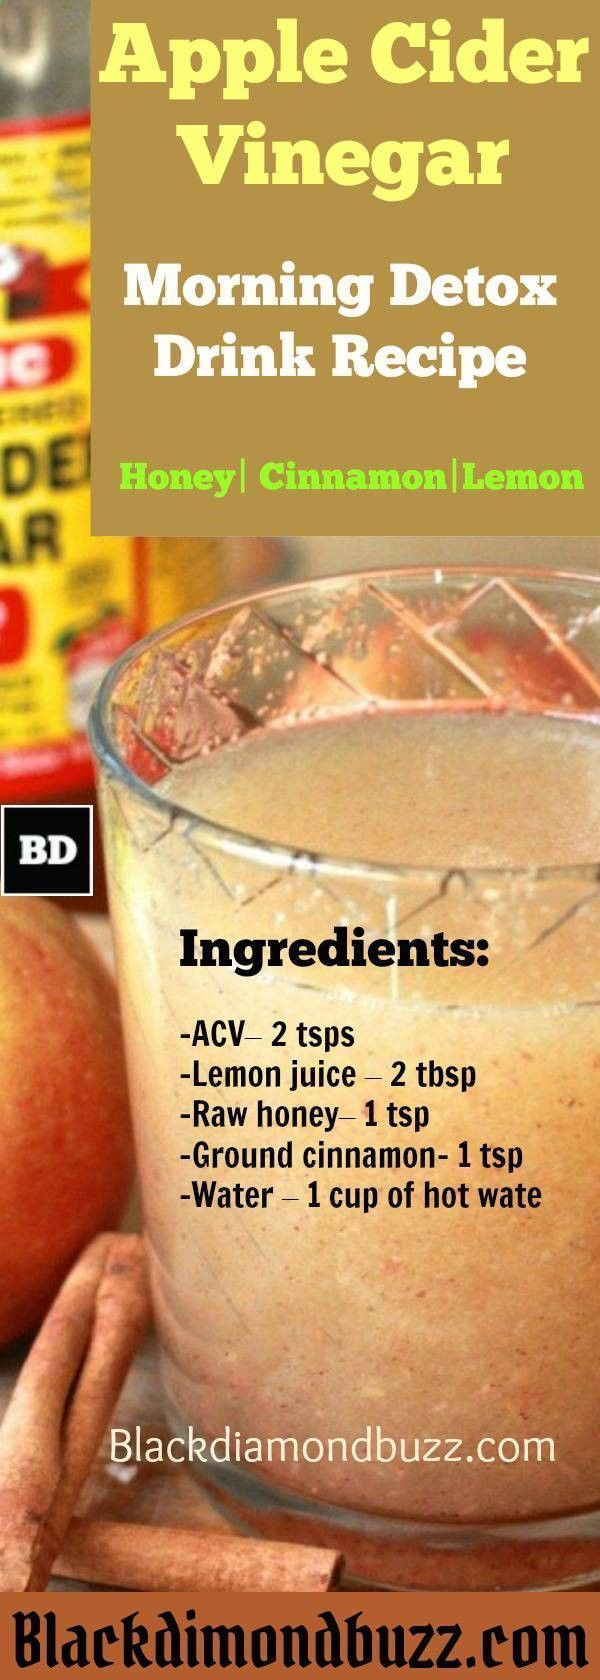 Fat burning effects of grapefruit picture 9